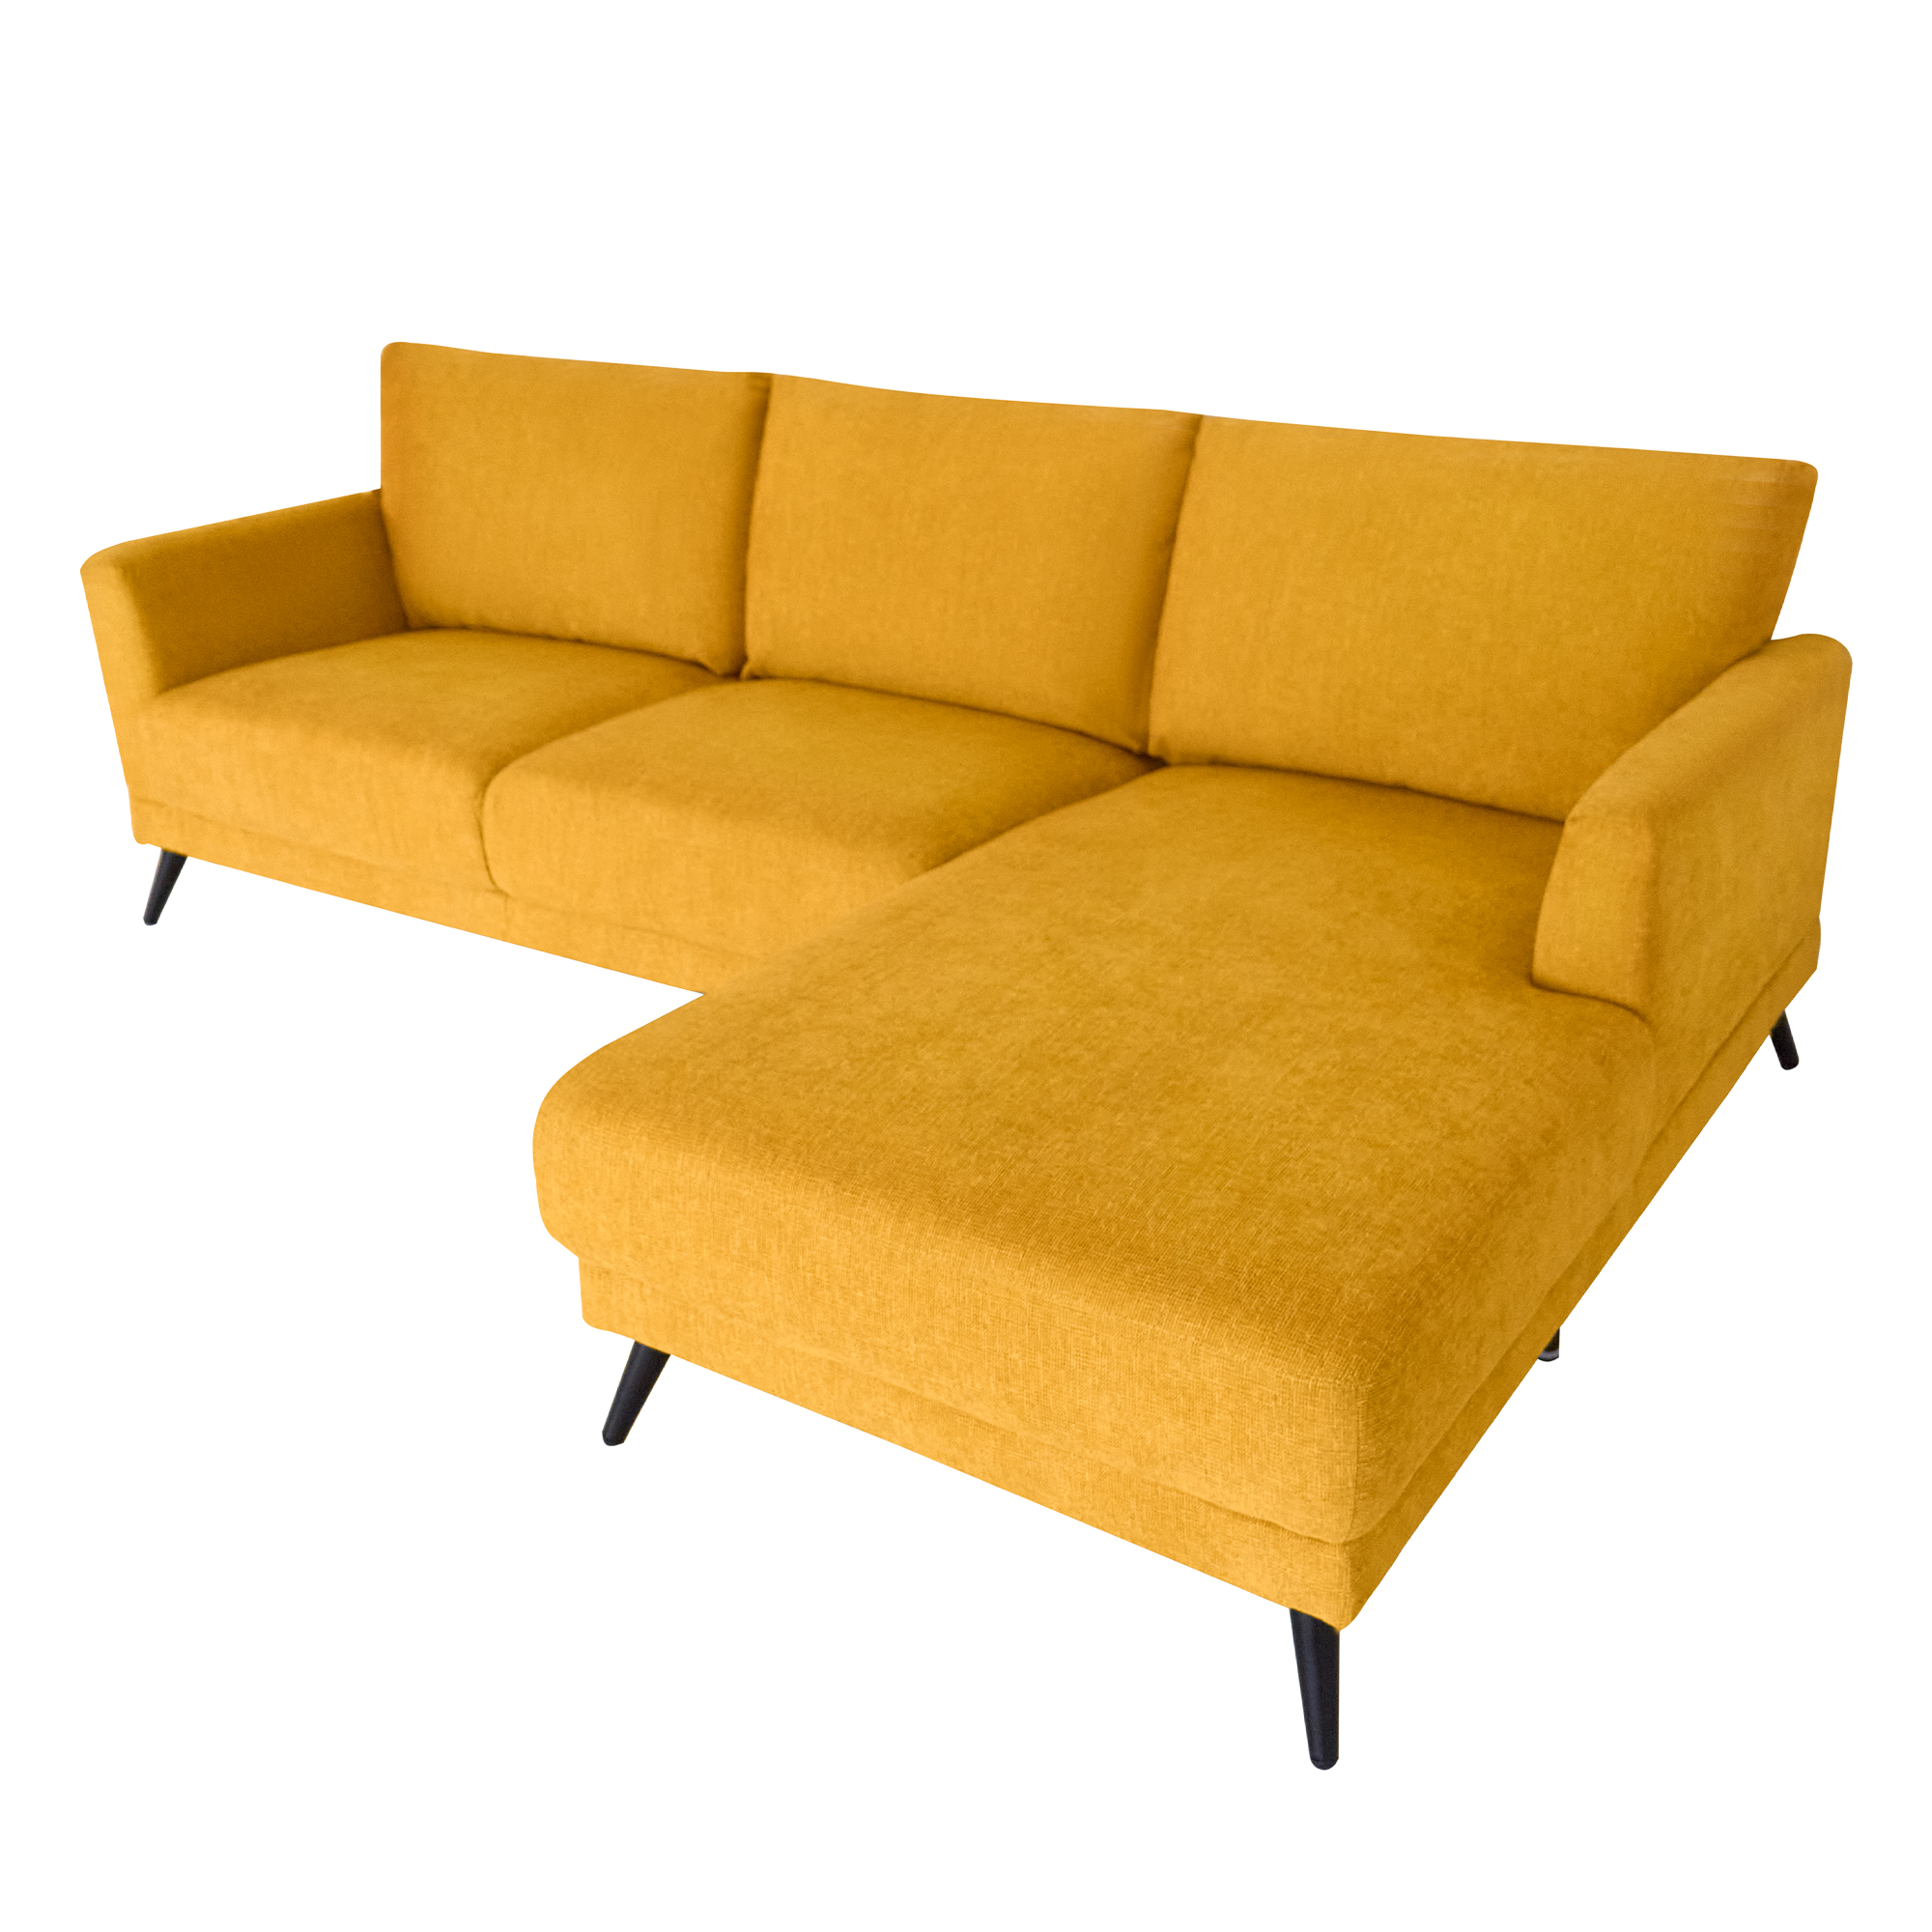 Https Www Wallaroosfurnitureandmattresses Com Product The Wright Modern Sectional Sofa